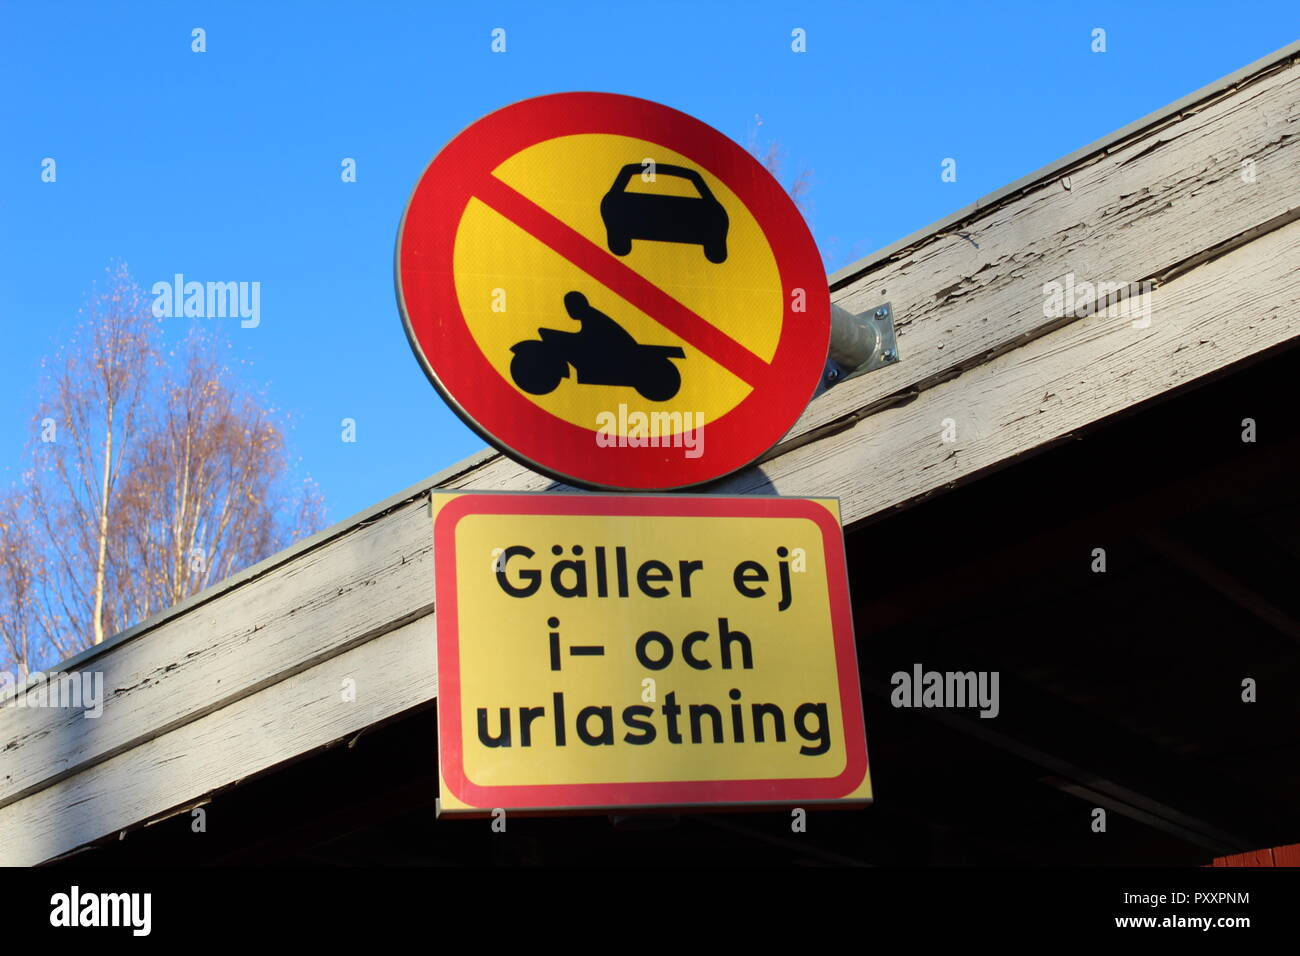 TRAFFIC SIGN IN SWEDEN. - Stock Image